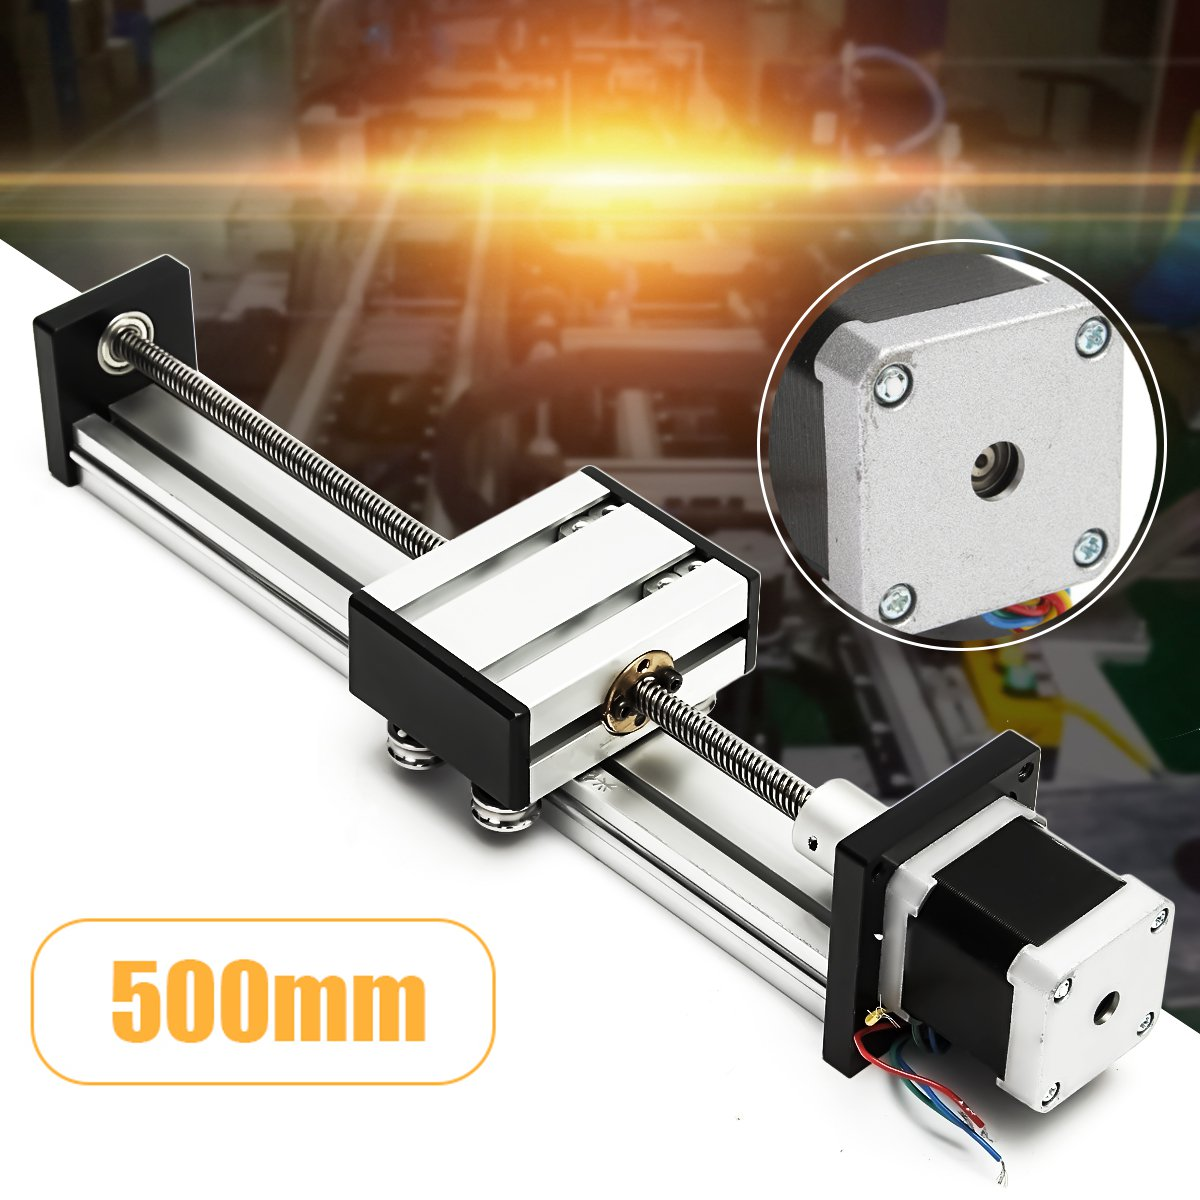 New 500mm Slide Stroke CNC Linear Motion Lead Ball Screw Slide Stage Stroke 42 Motor Actuator Stepper For Engraving Machine new 500mm slide stroke cnc linear motion lead ball screw slide stage stroke 42 motor actuator stepper for engraving machine